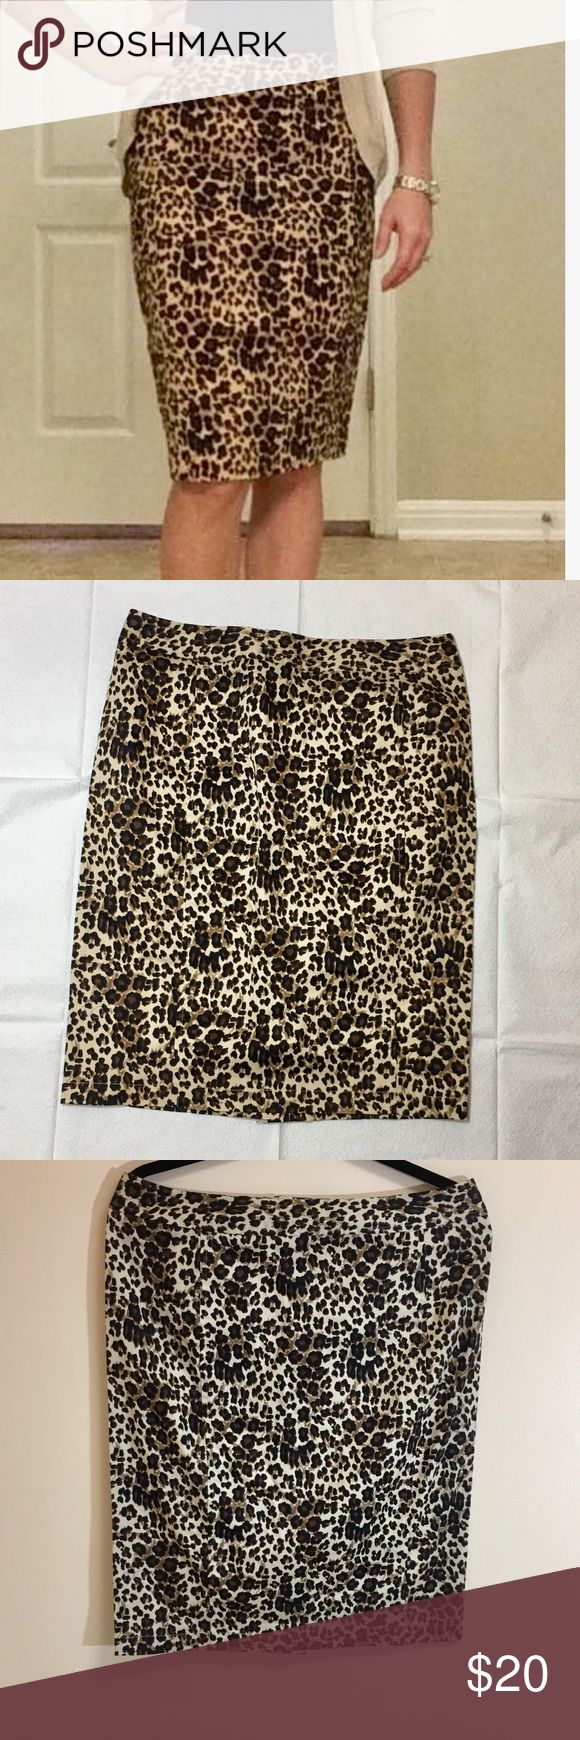 41 Hawthorn Leopard Pencil Skirt Leopard pencil skirt  Form fitting but stretchy fabric  Never worn only tried on  Outside tag missing but inside stitch fix tag attached Skirts Pencil